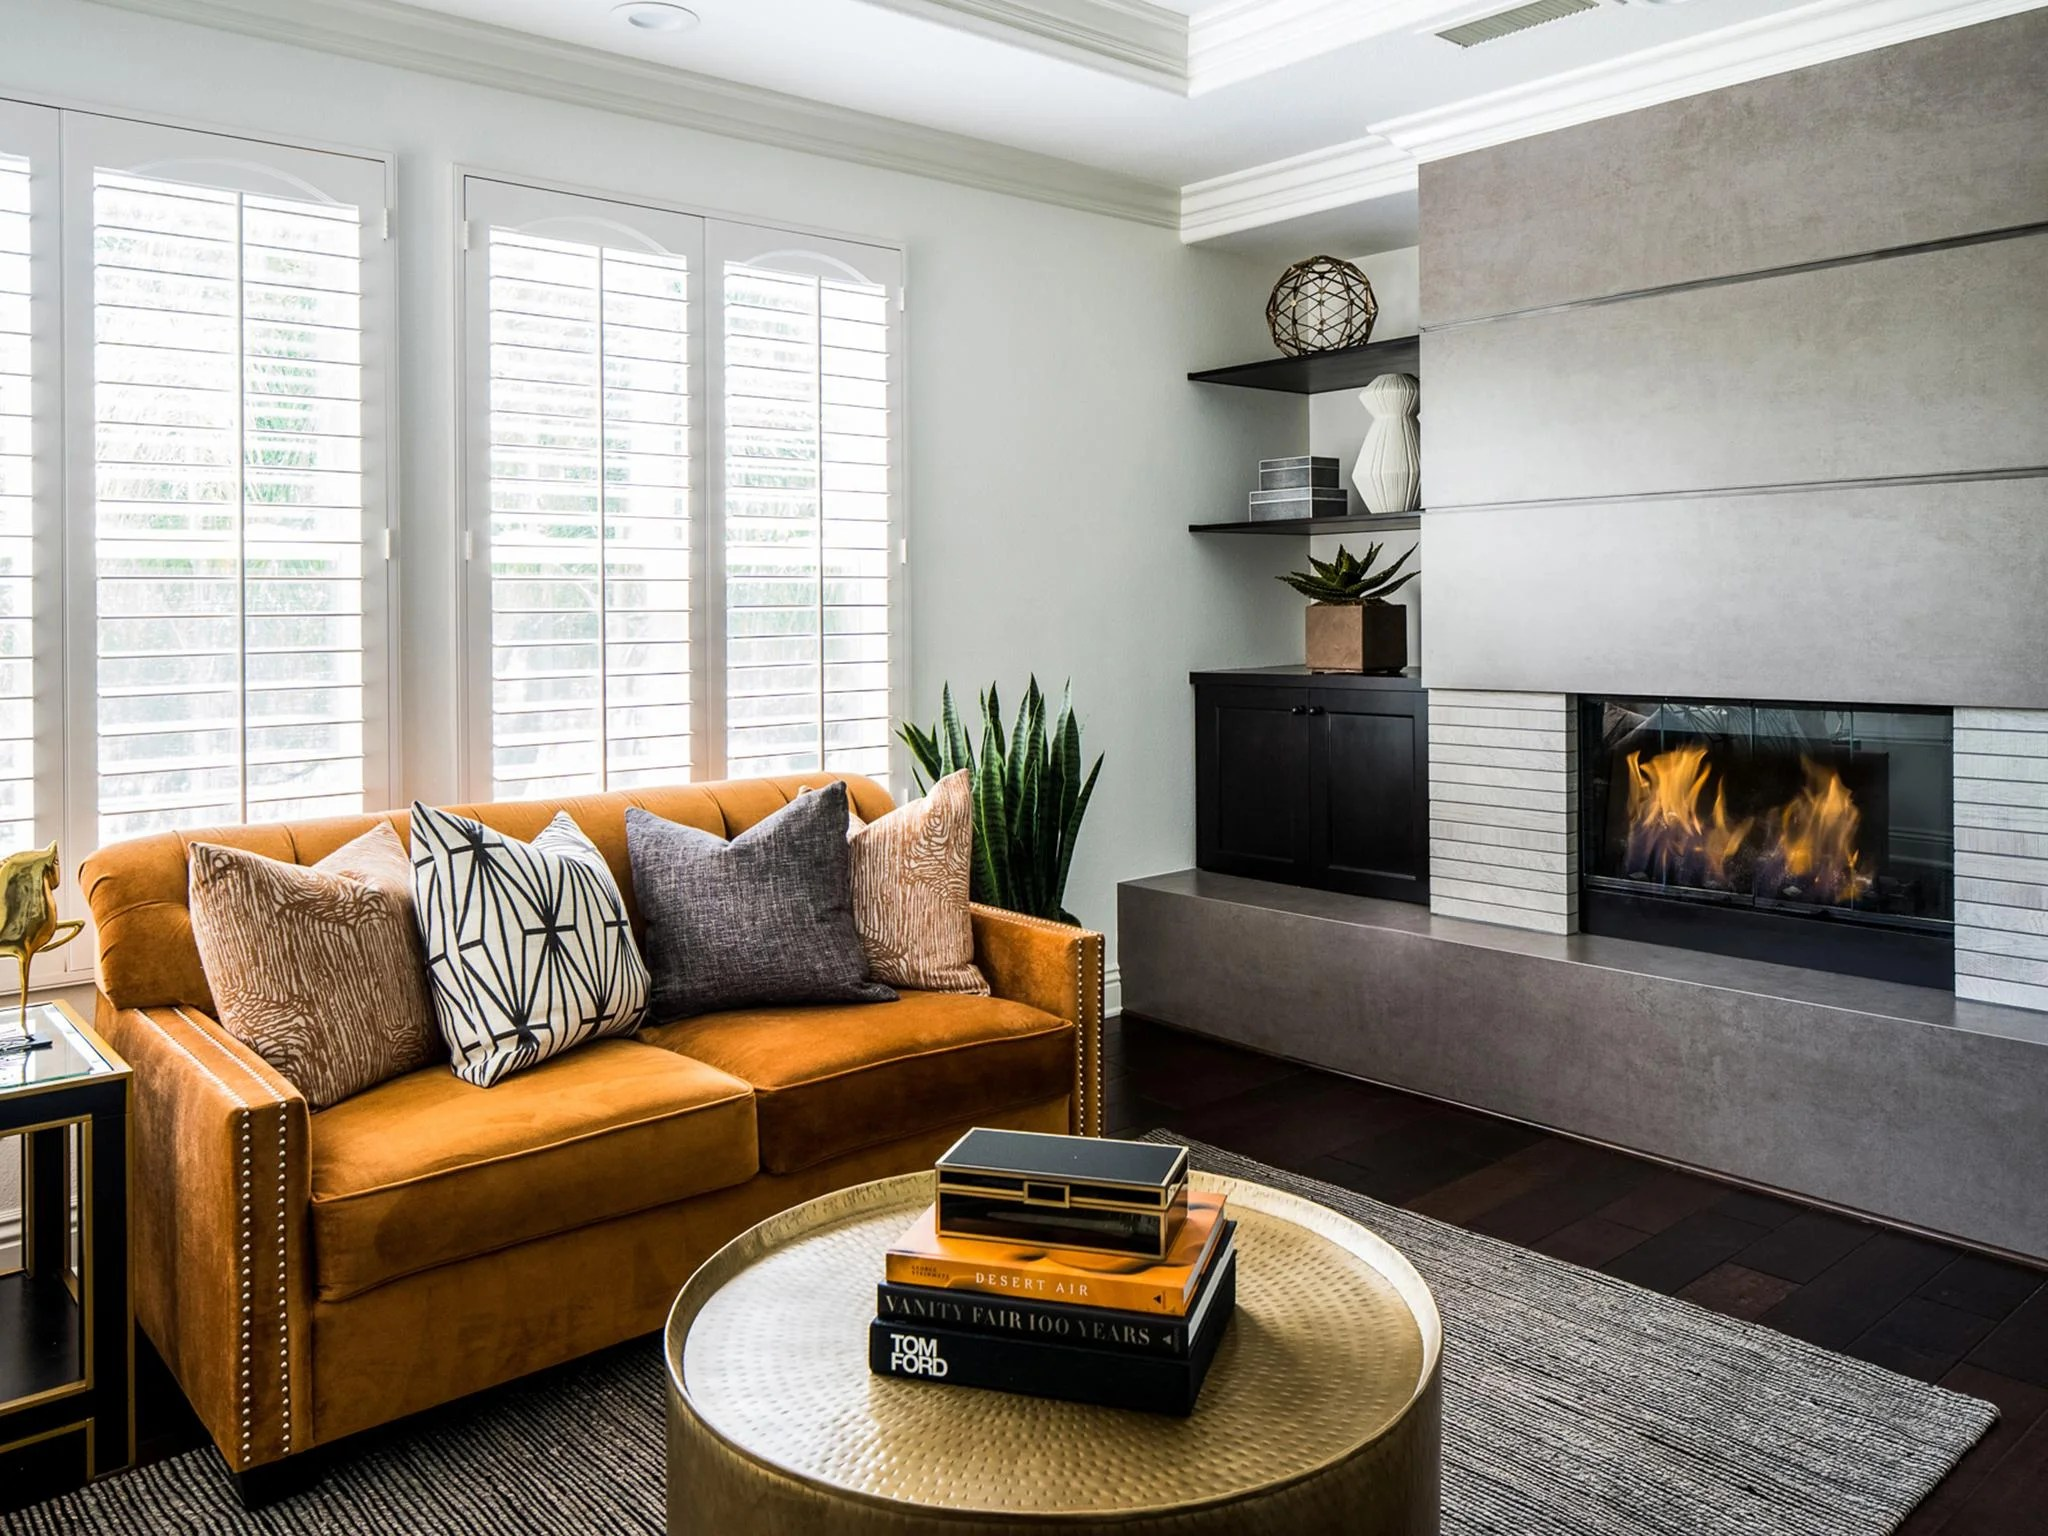 modern living room decorating ideas uk for rooms with brick fireplaces ten home design trends to expect in 2018 the independent 2 rich colours throughout